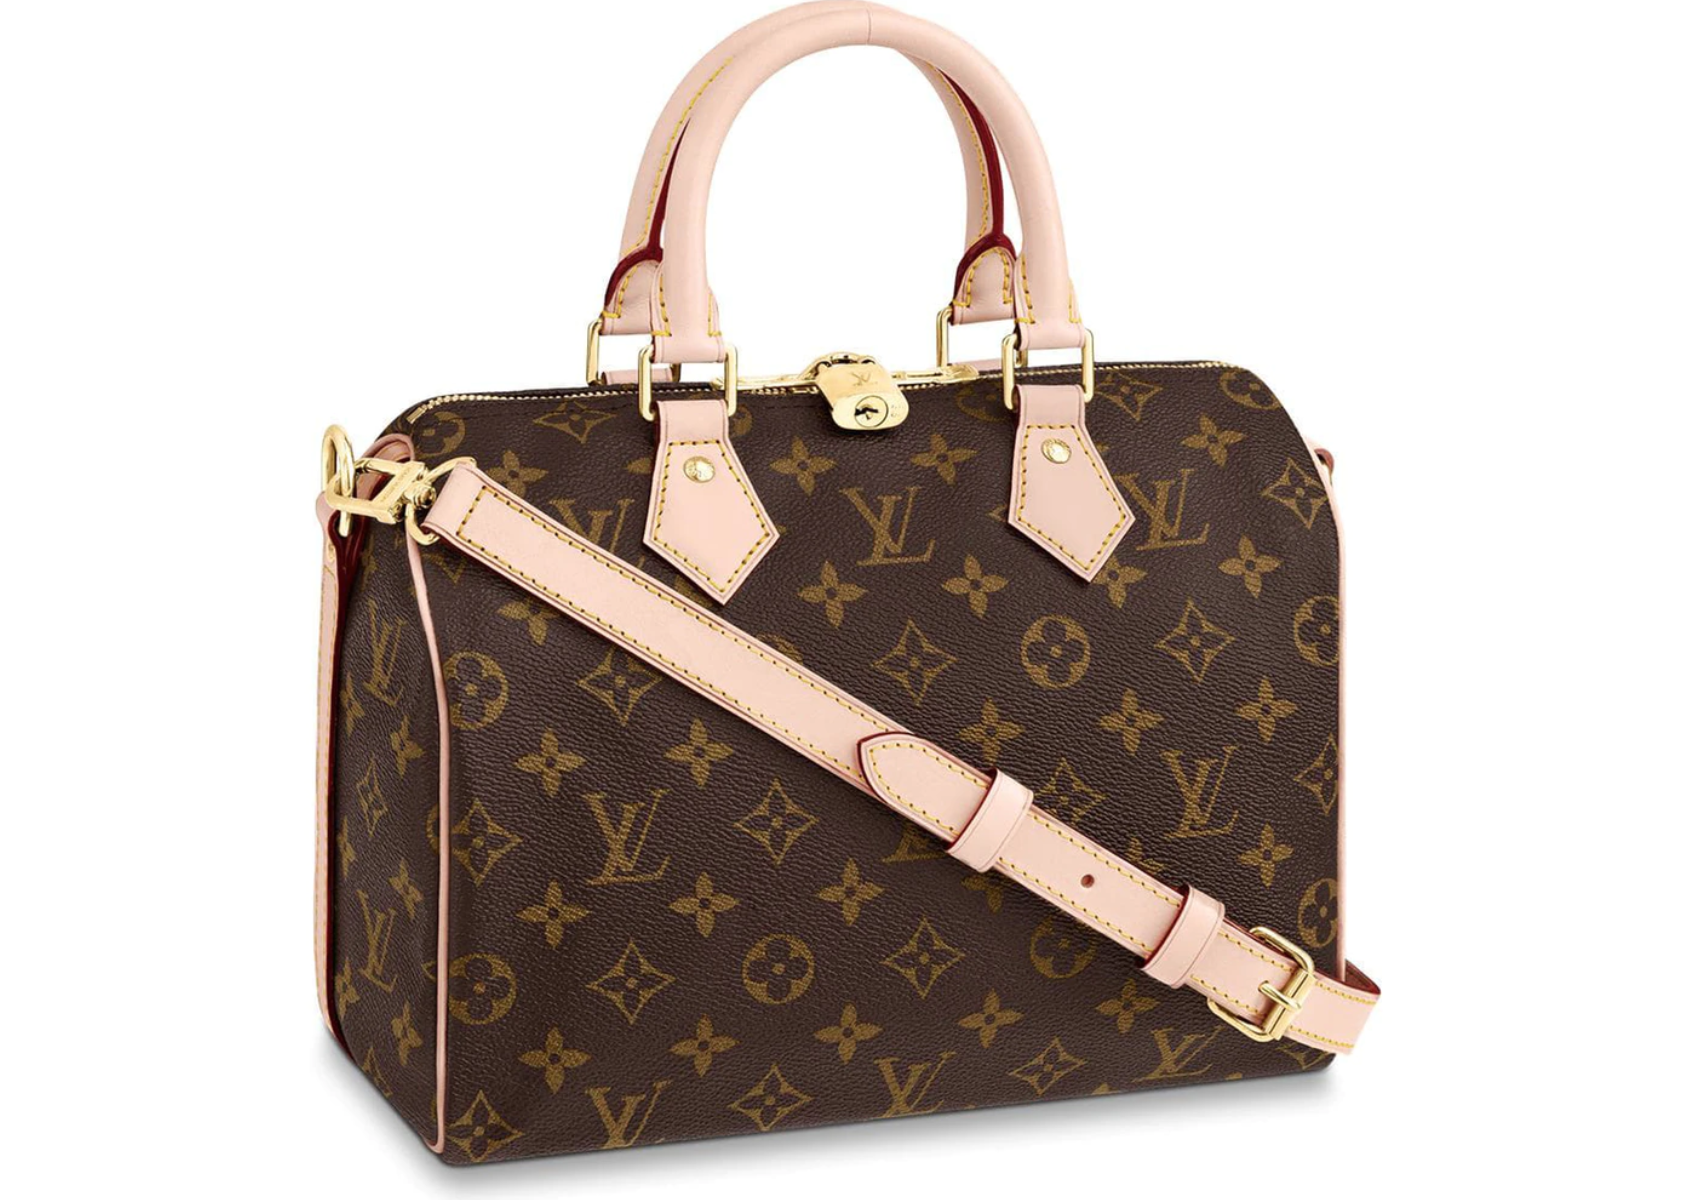 Louis Vuitton - Speedy